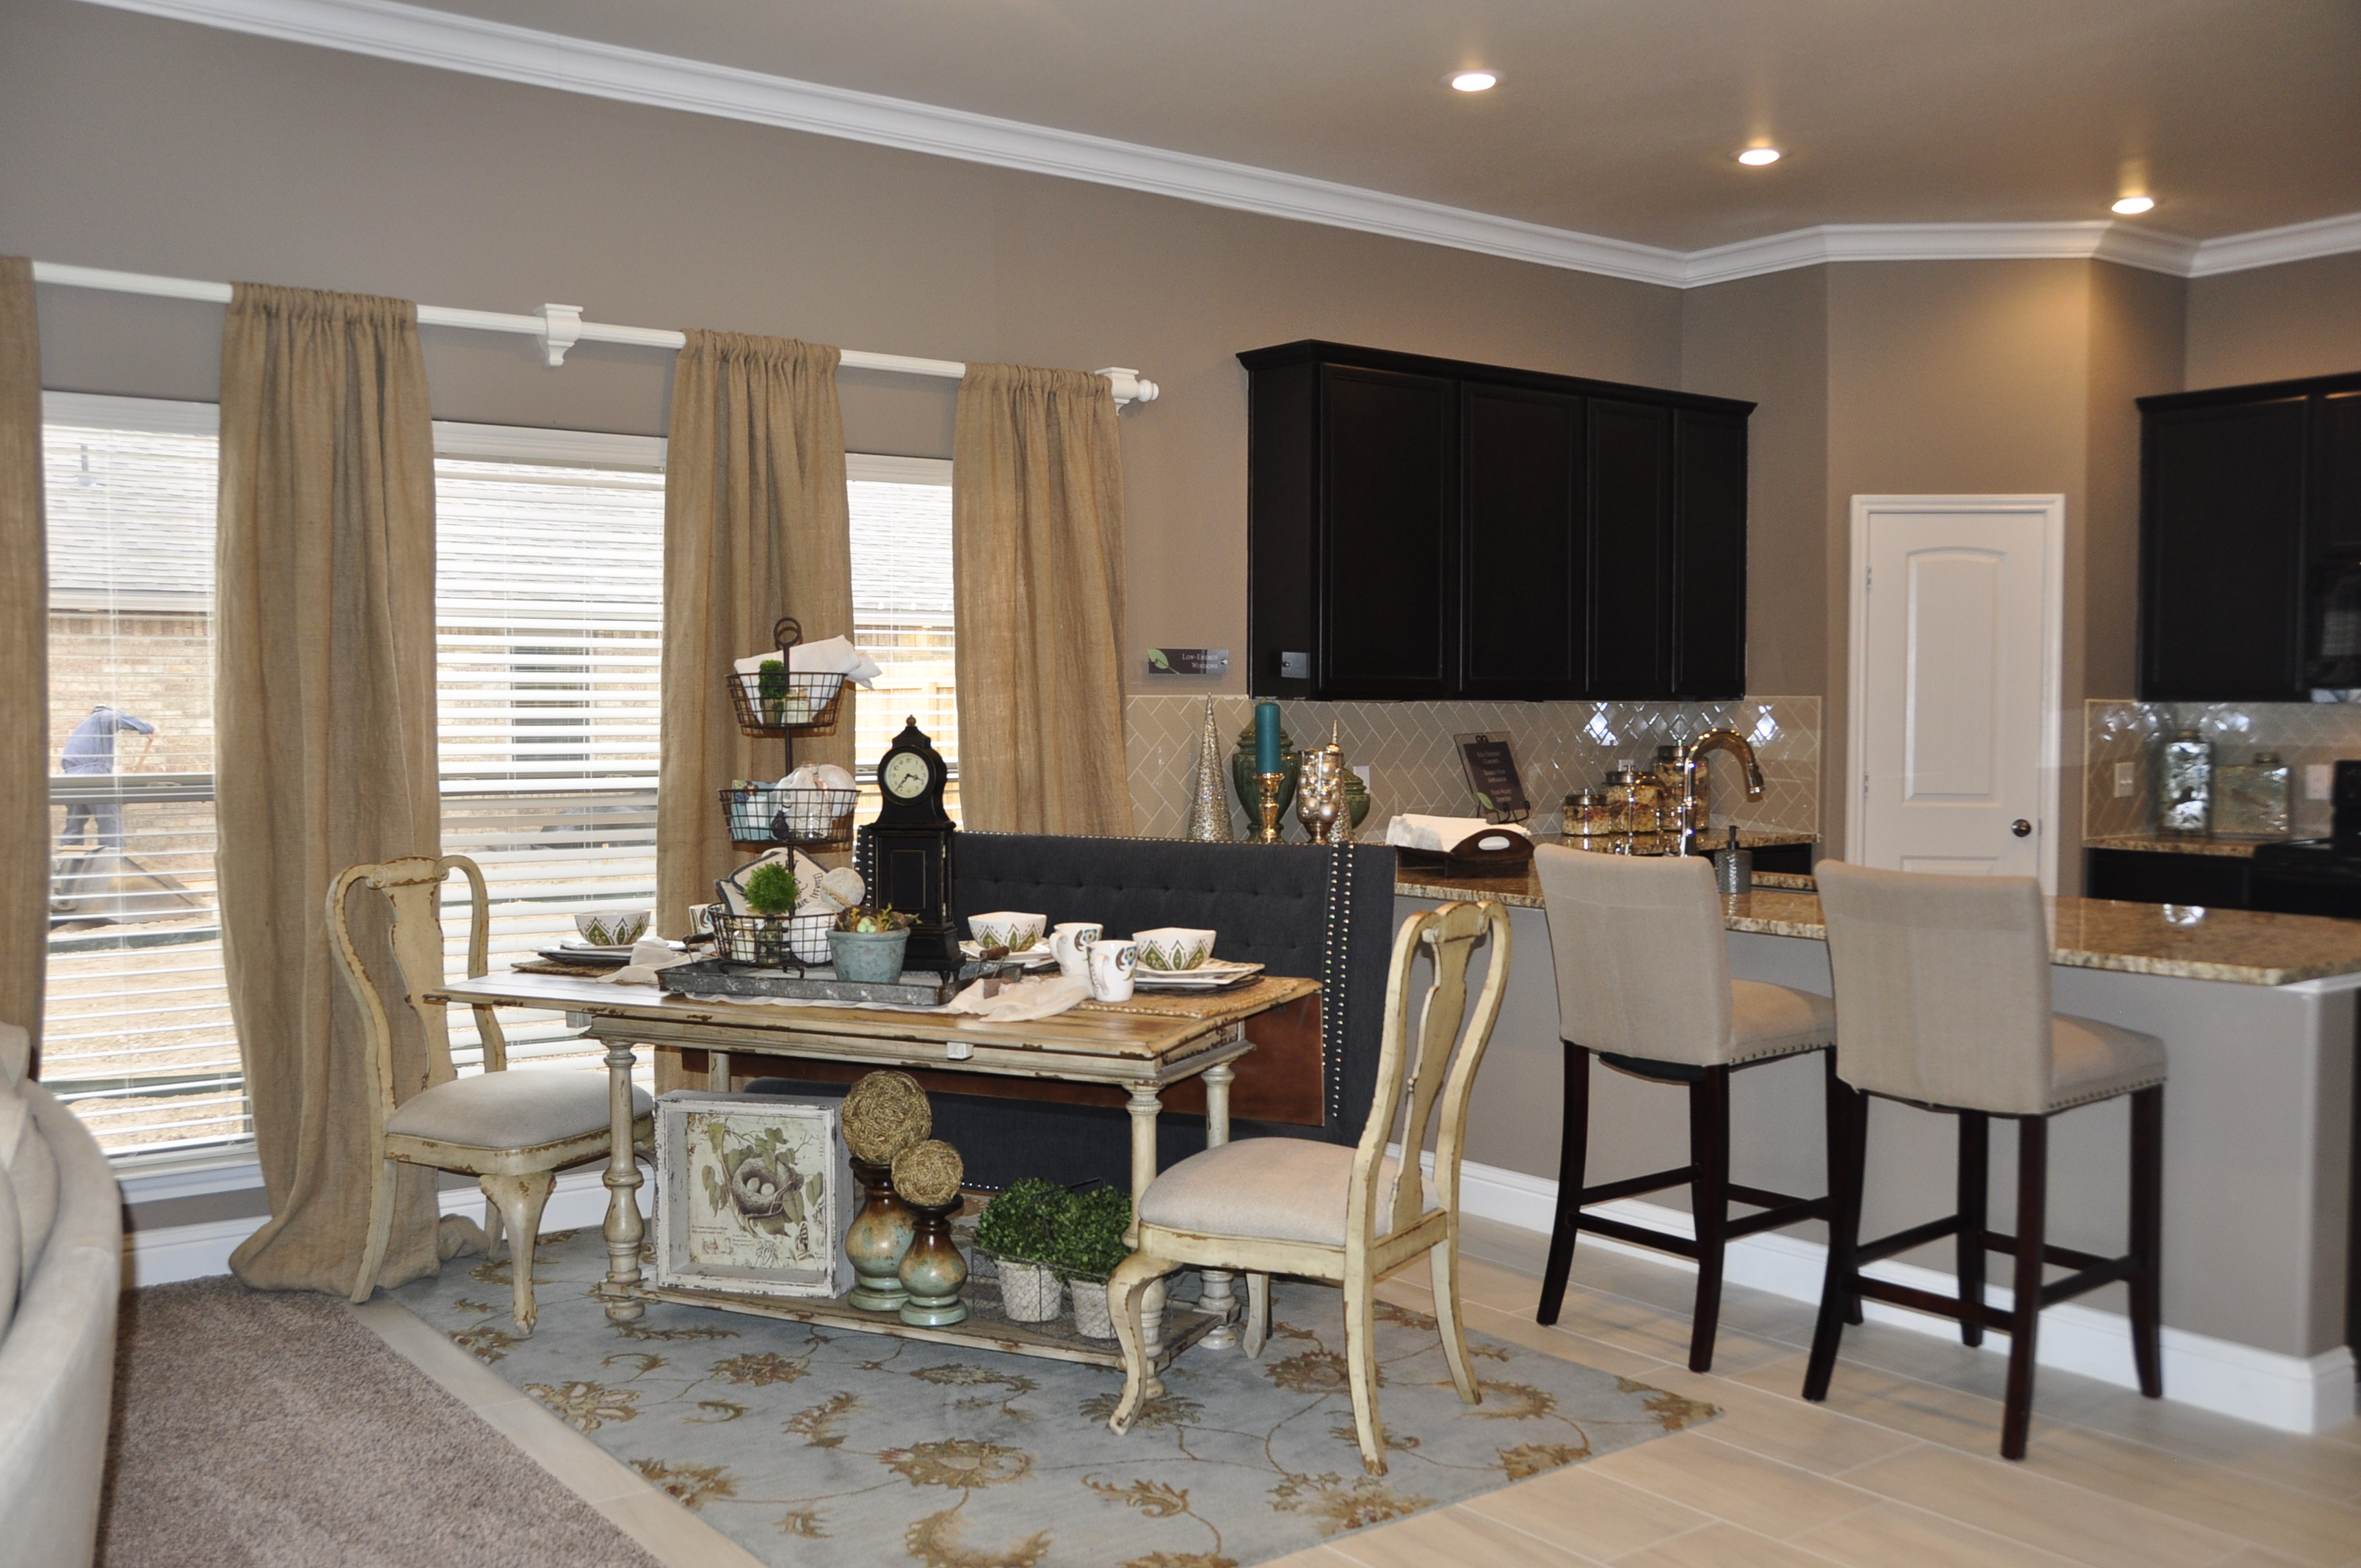 Betenbough Homes Floor Plans What We Love New Floor Plans House Made Home